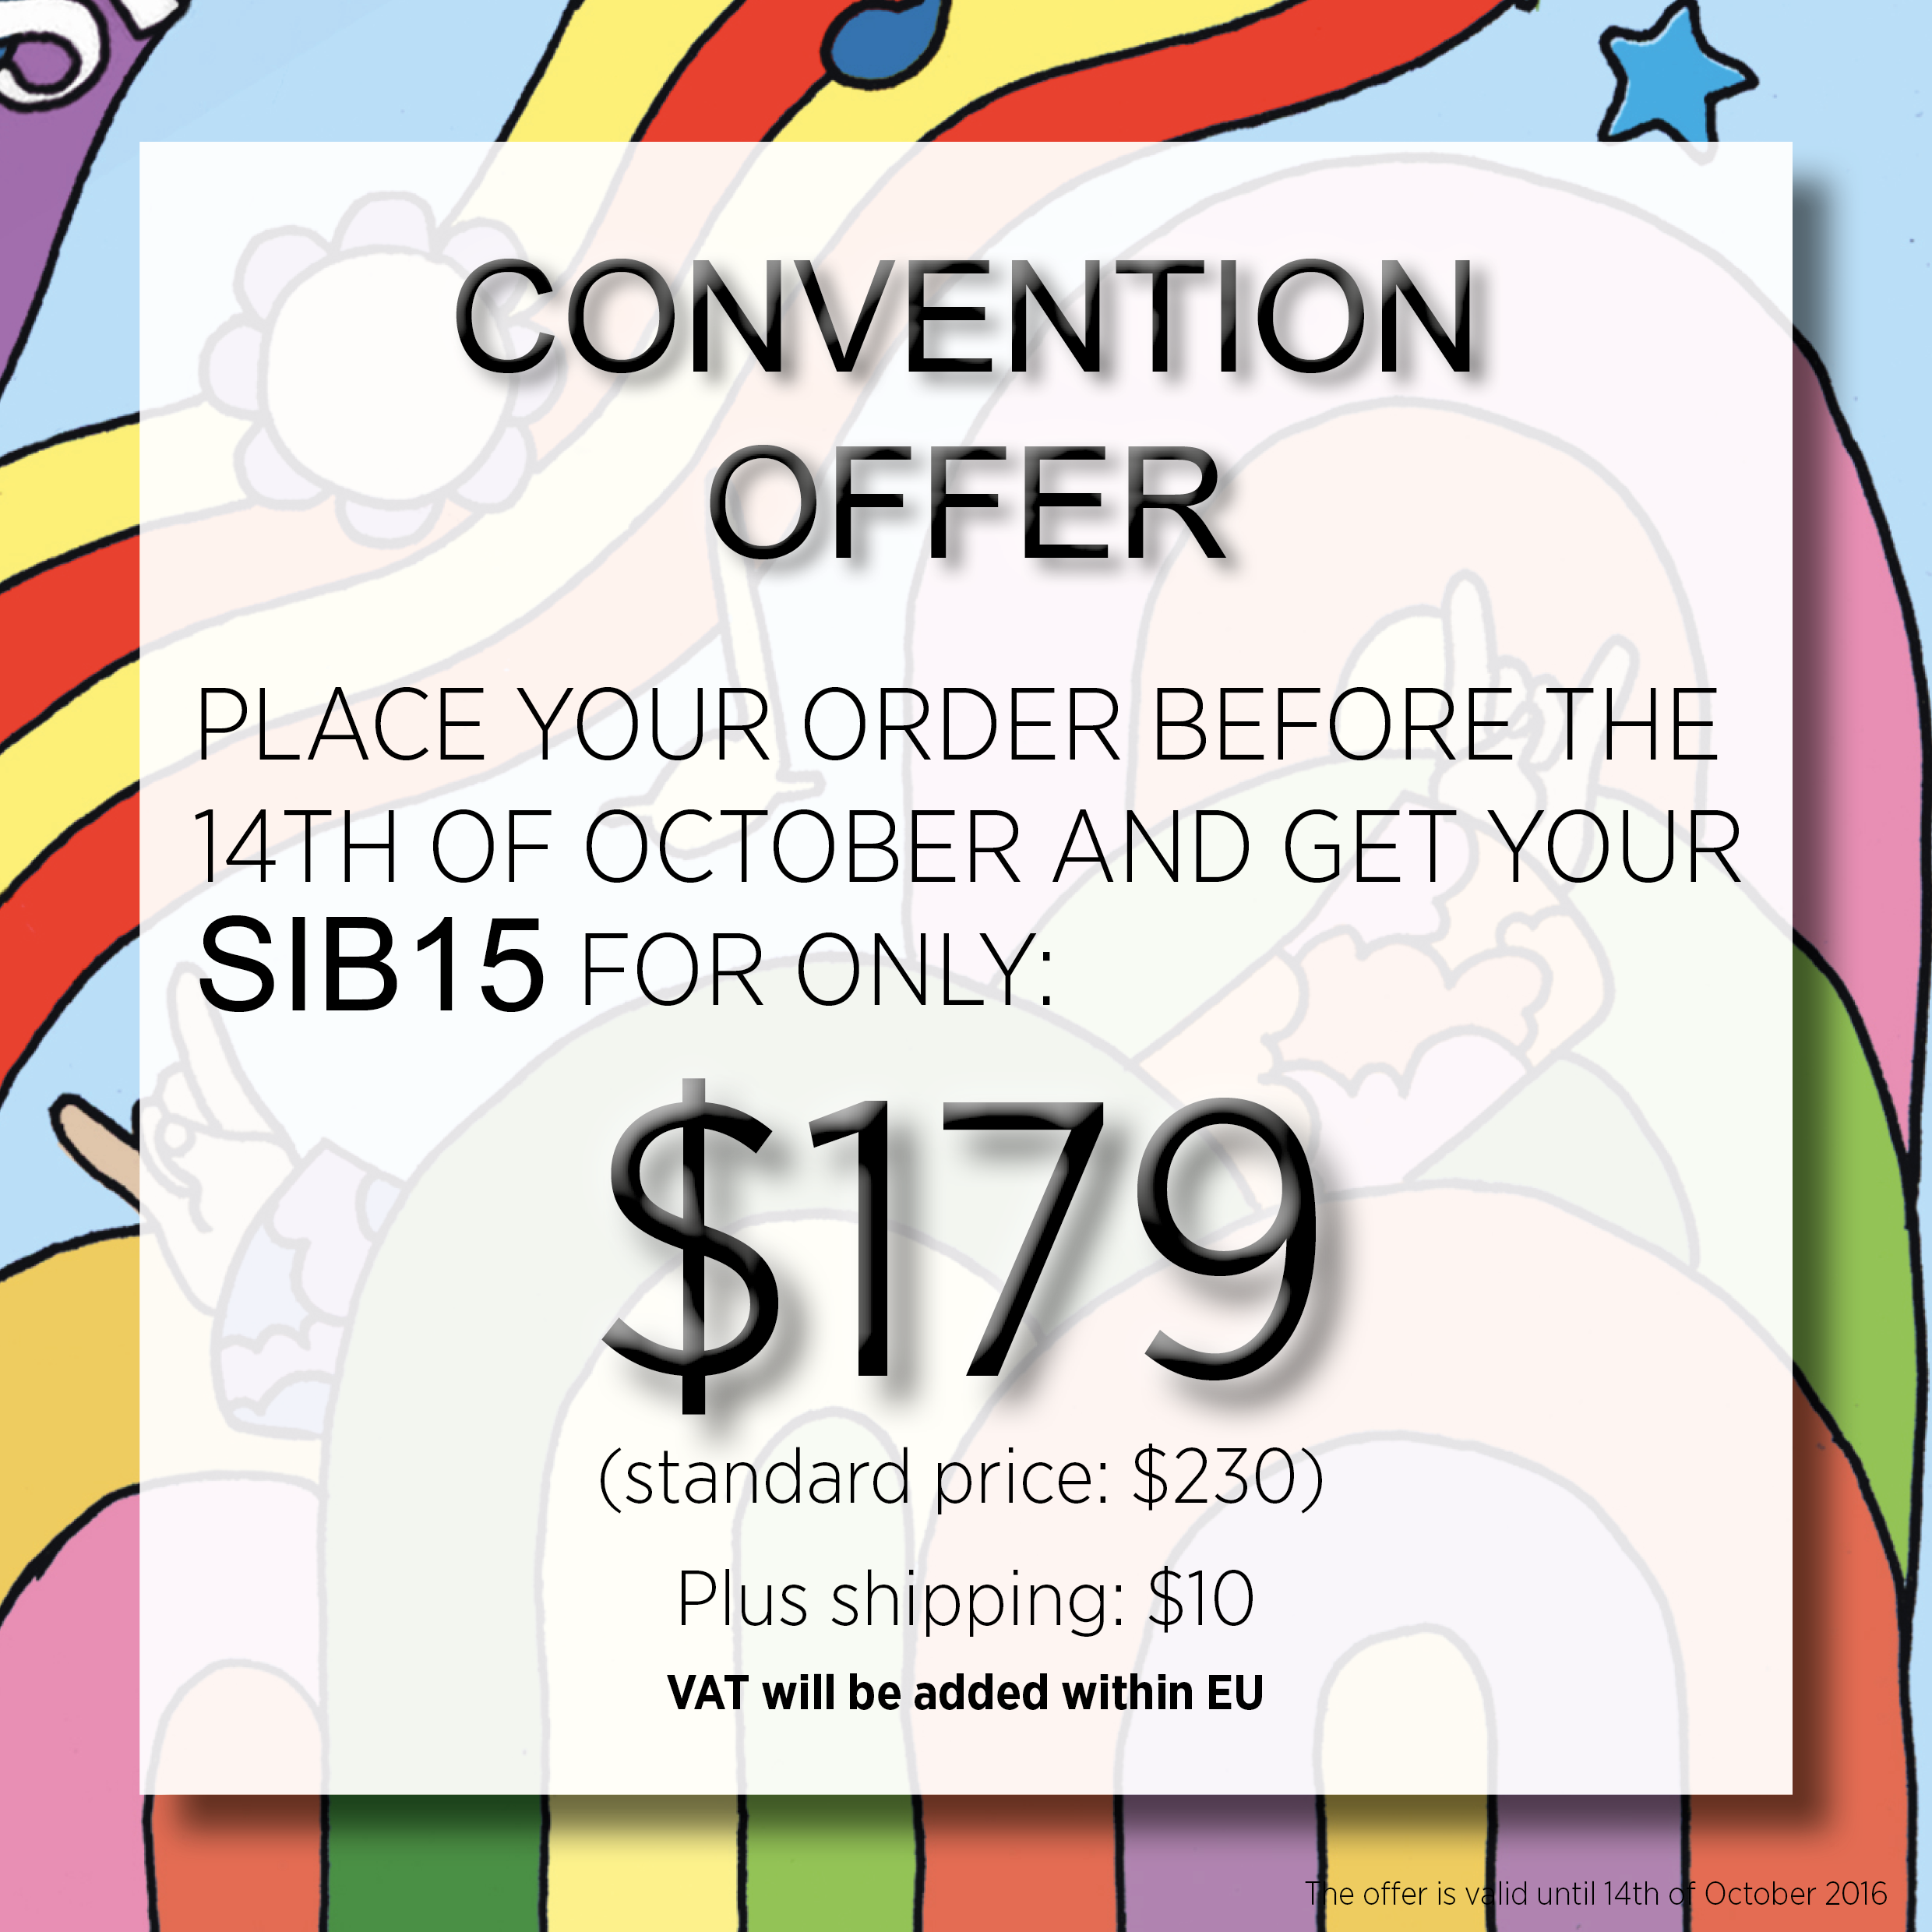 AES convention offer